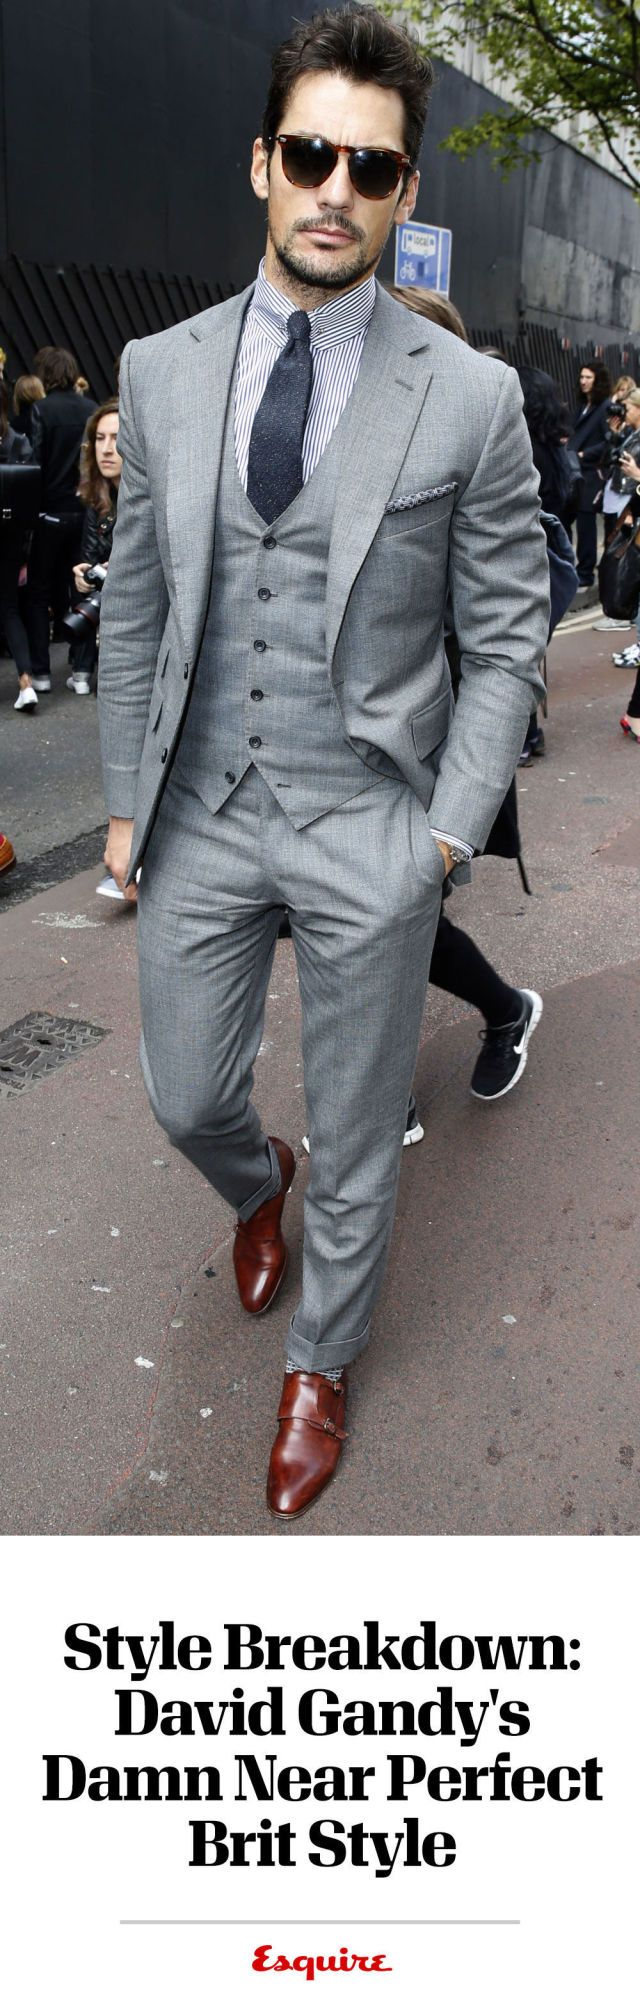 David Gandy Wore an Amazing Suit at London Collections Men - David Gandy Best Suits 2015 . . . . . der Blog für den Gentleman - www.thegentlemanclub.de/blog